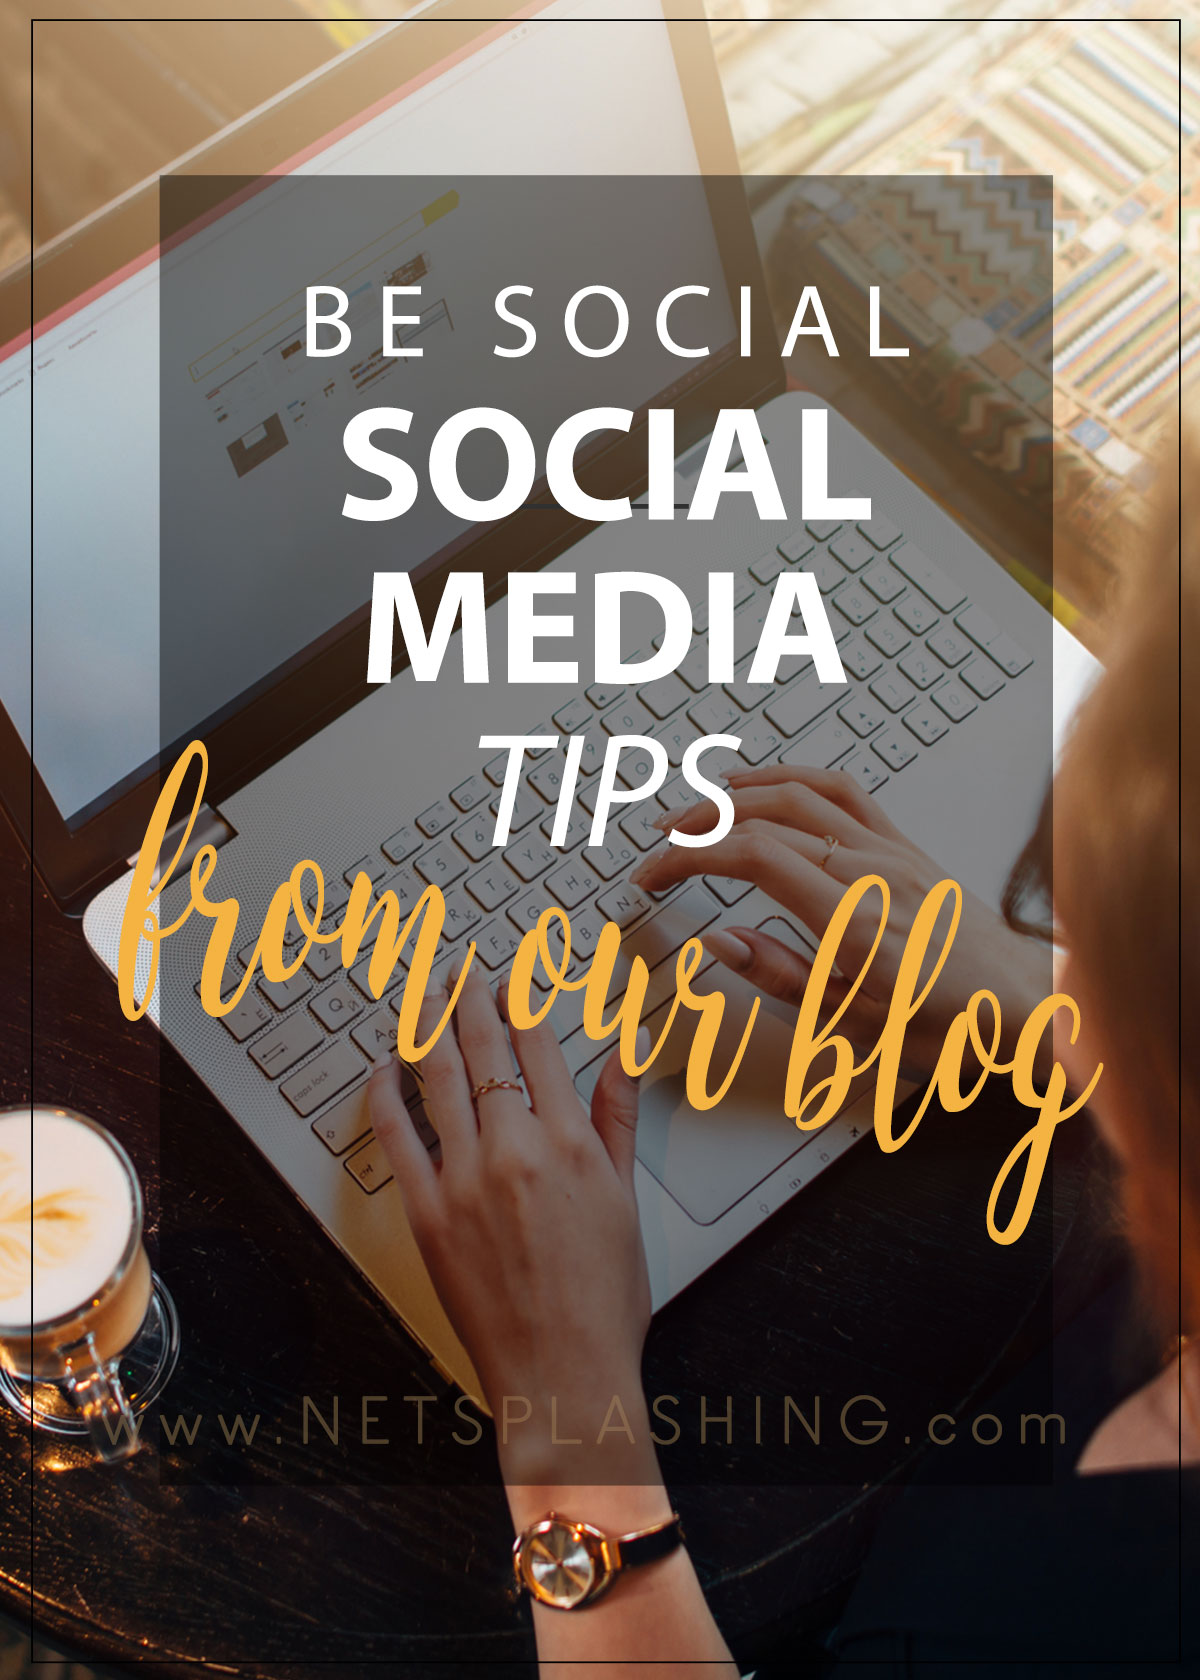 social-media-TIPS-from-the-netsplashing-blog-1